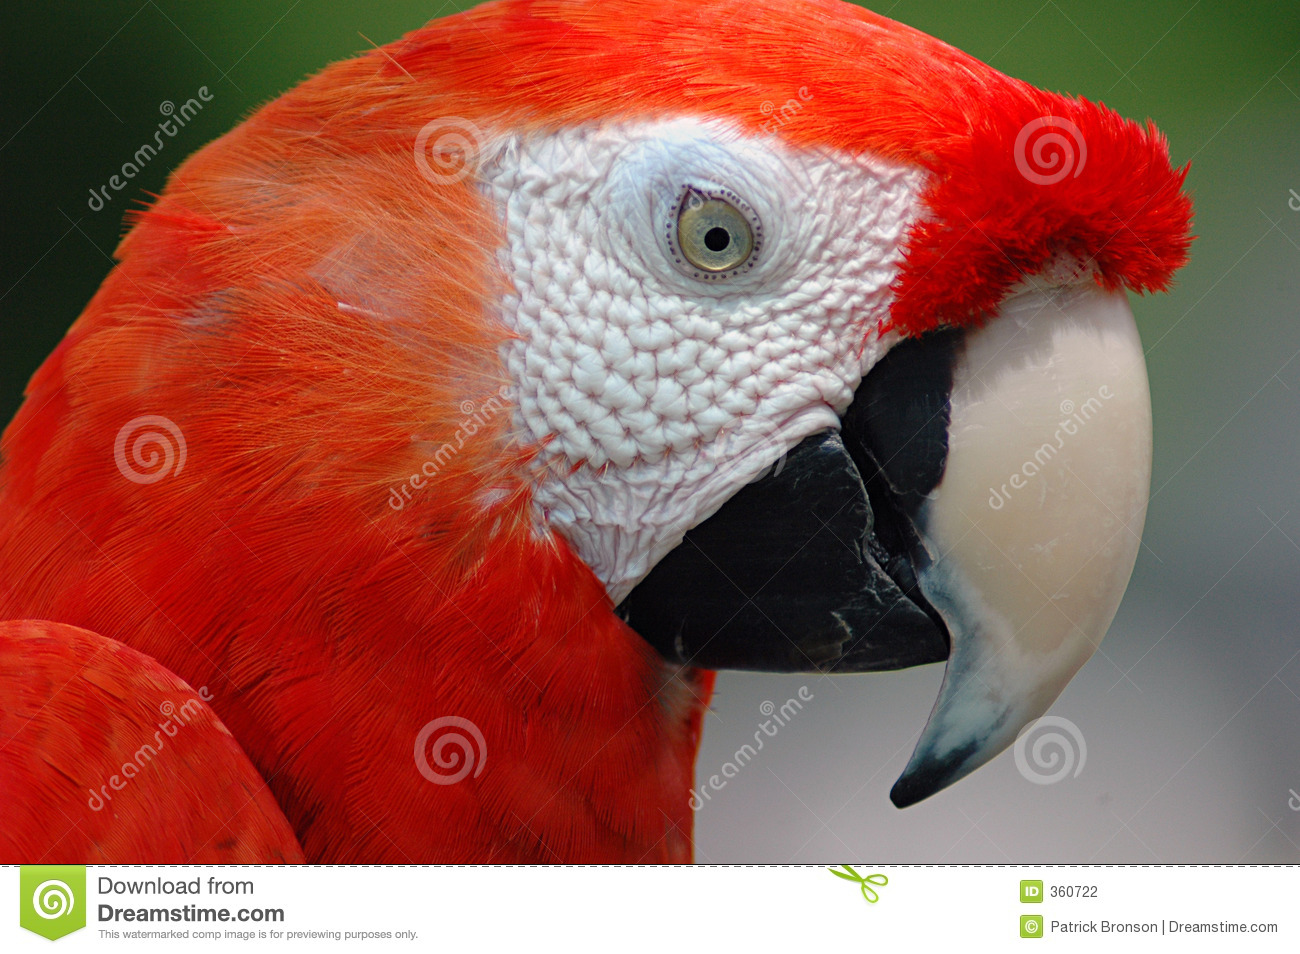 Macaw parrot red - photo#12